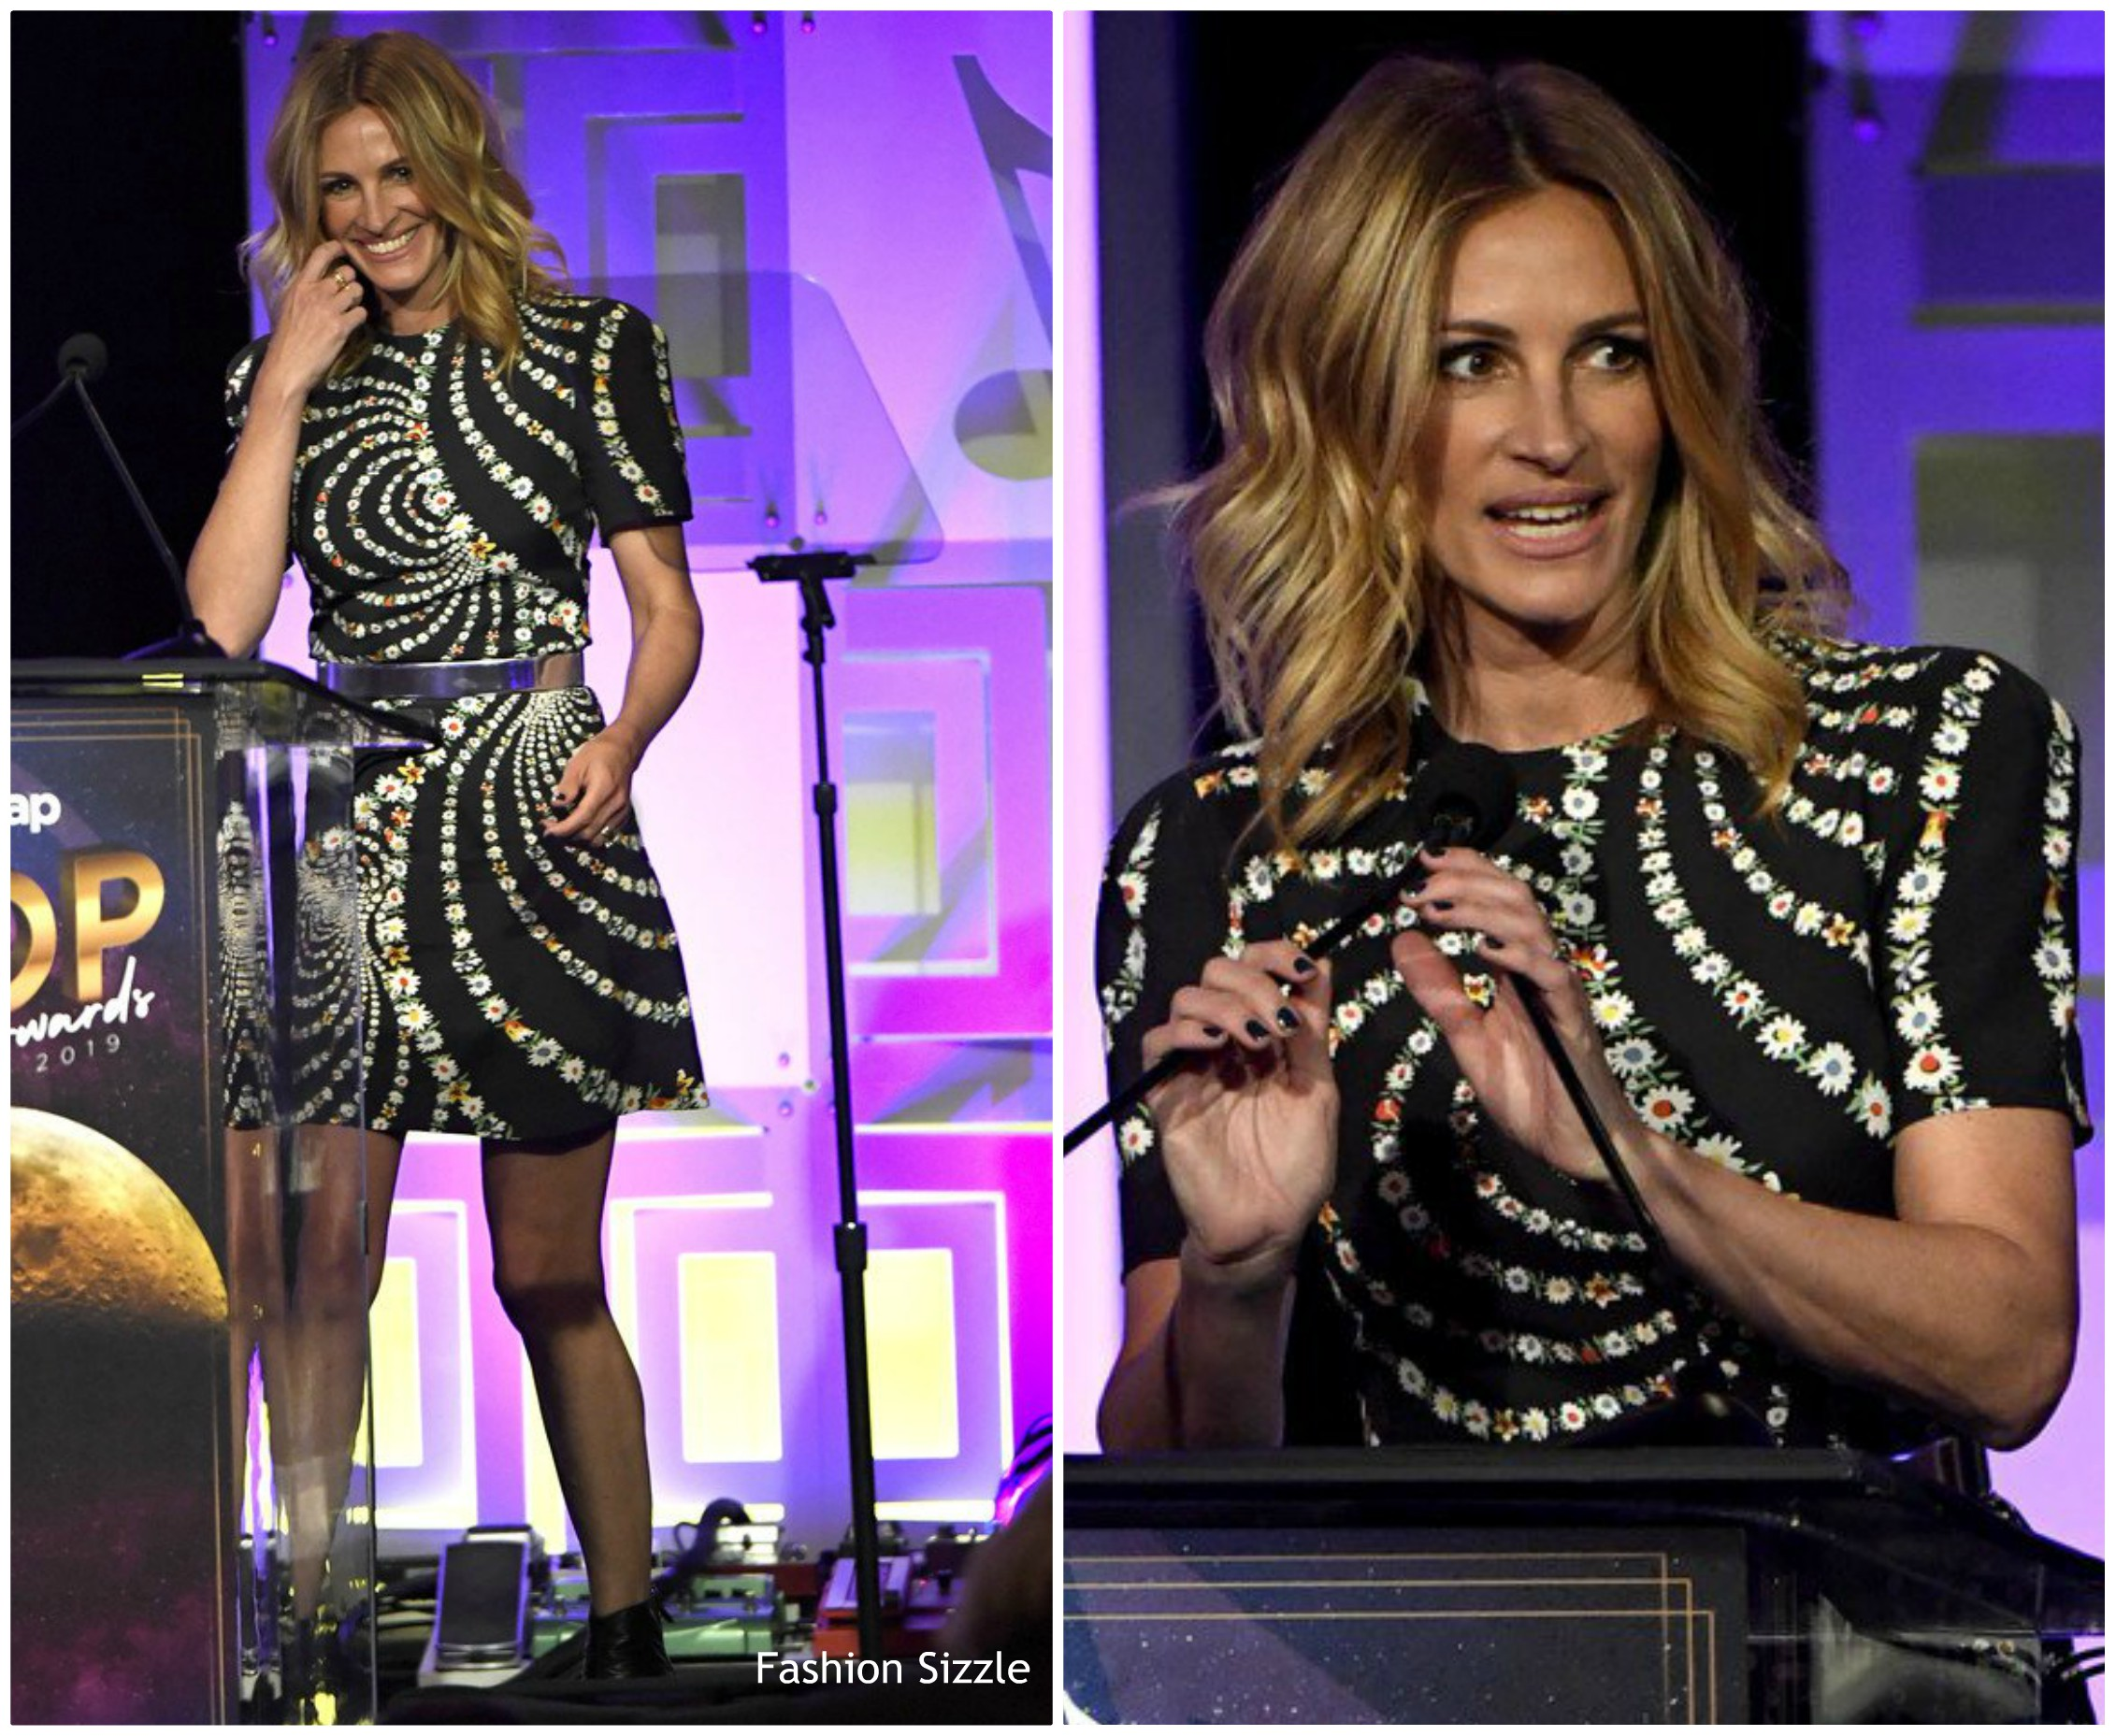 julia-roberts-in-givenchy-ascap-2019-pop-music-awards